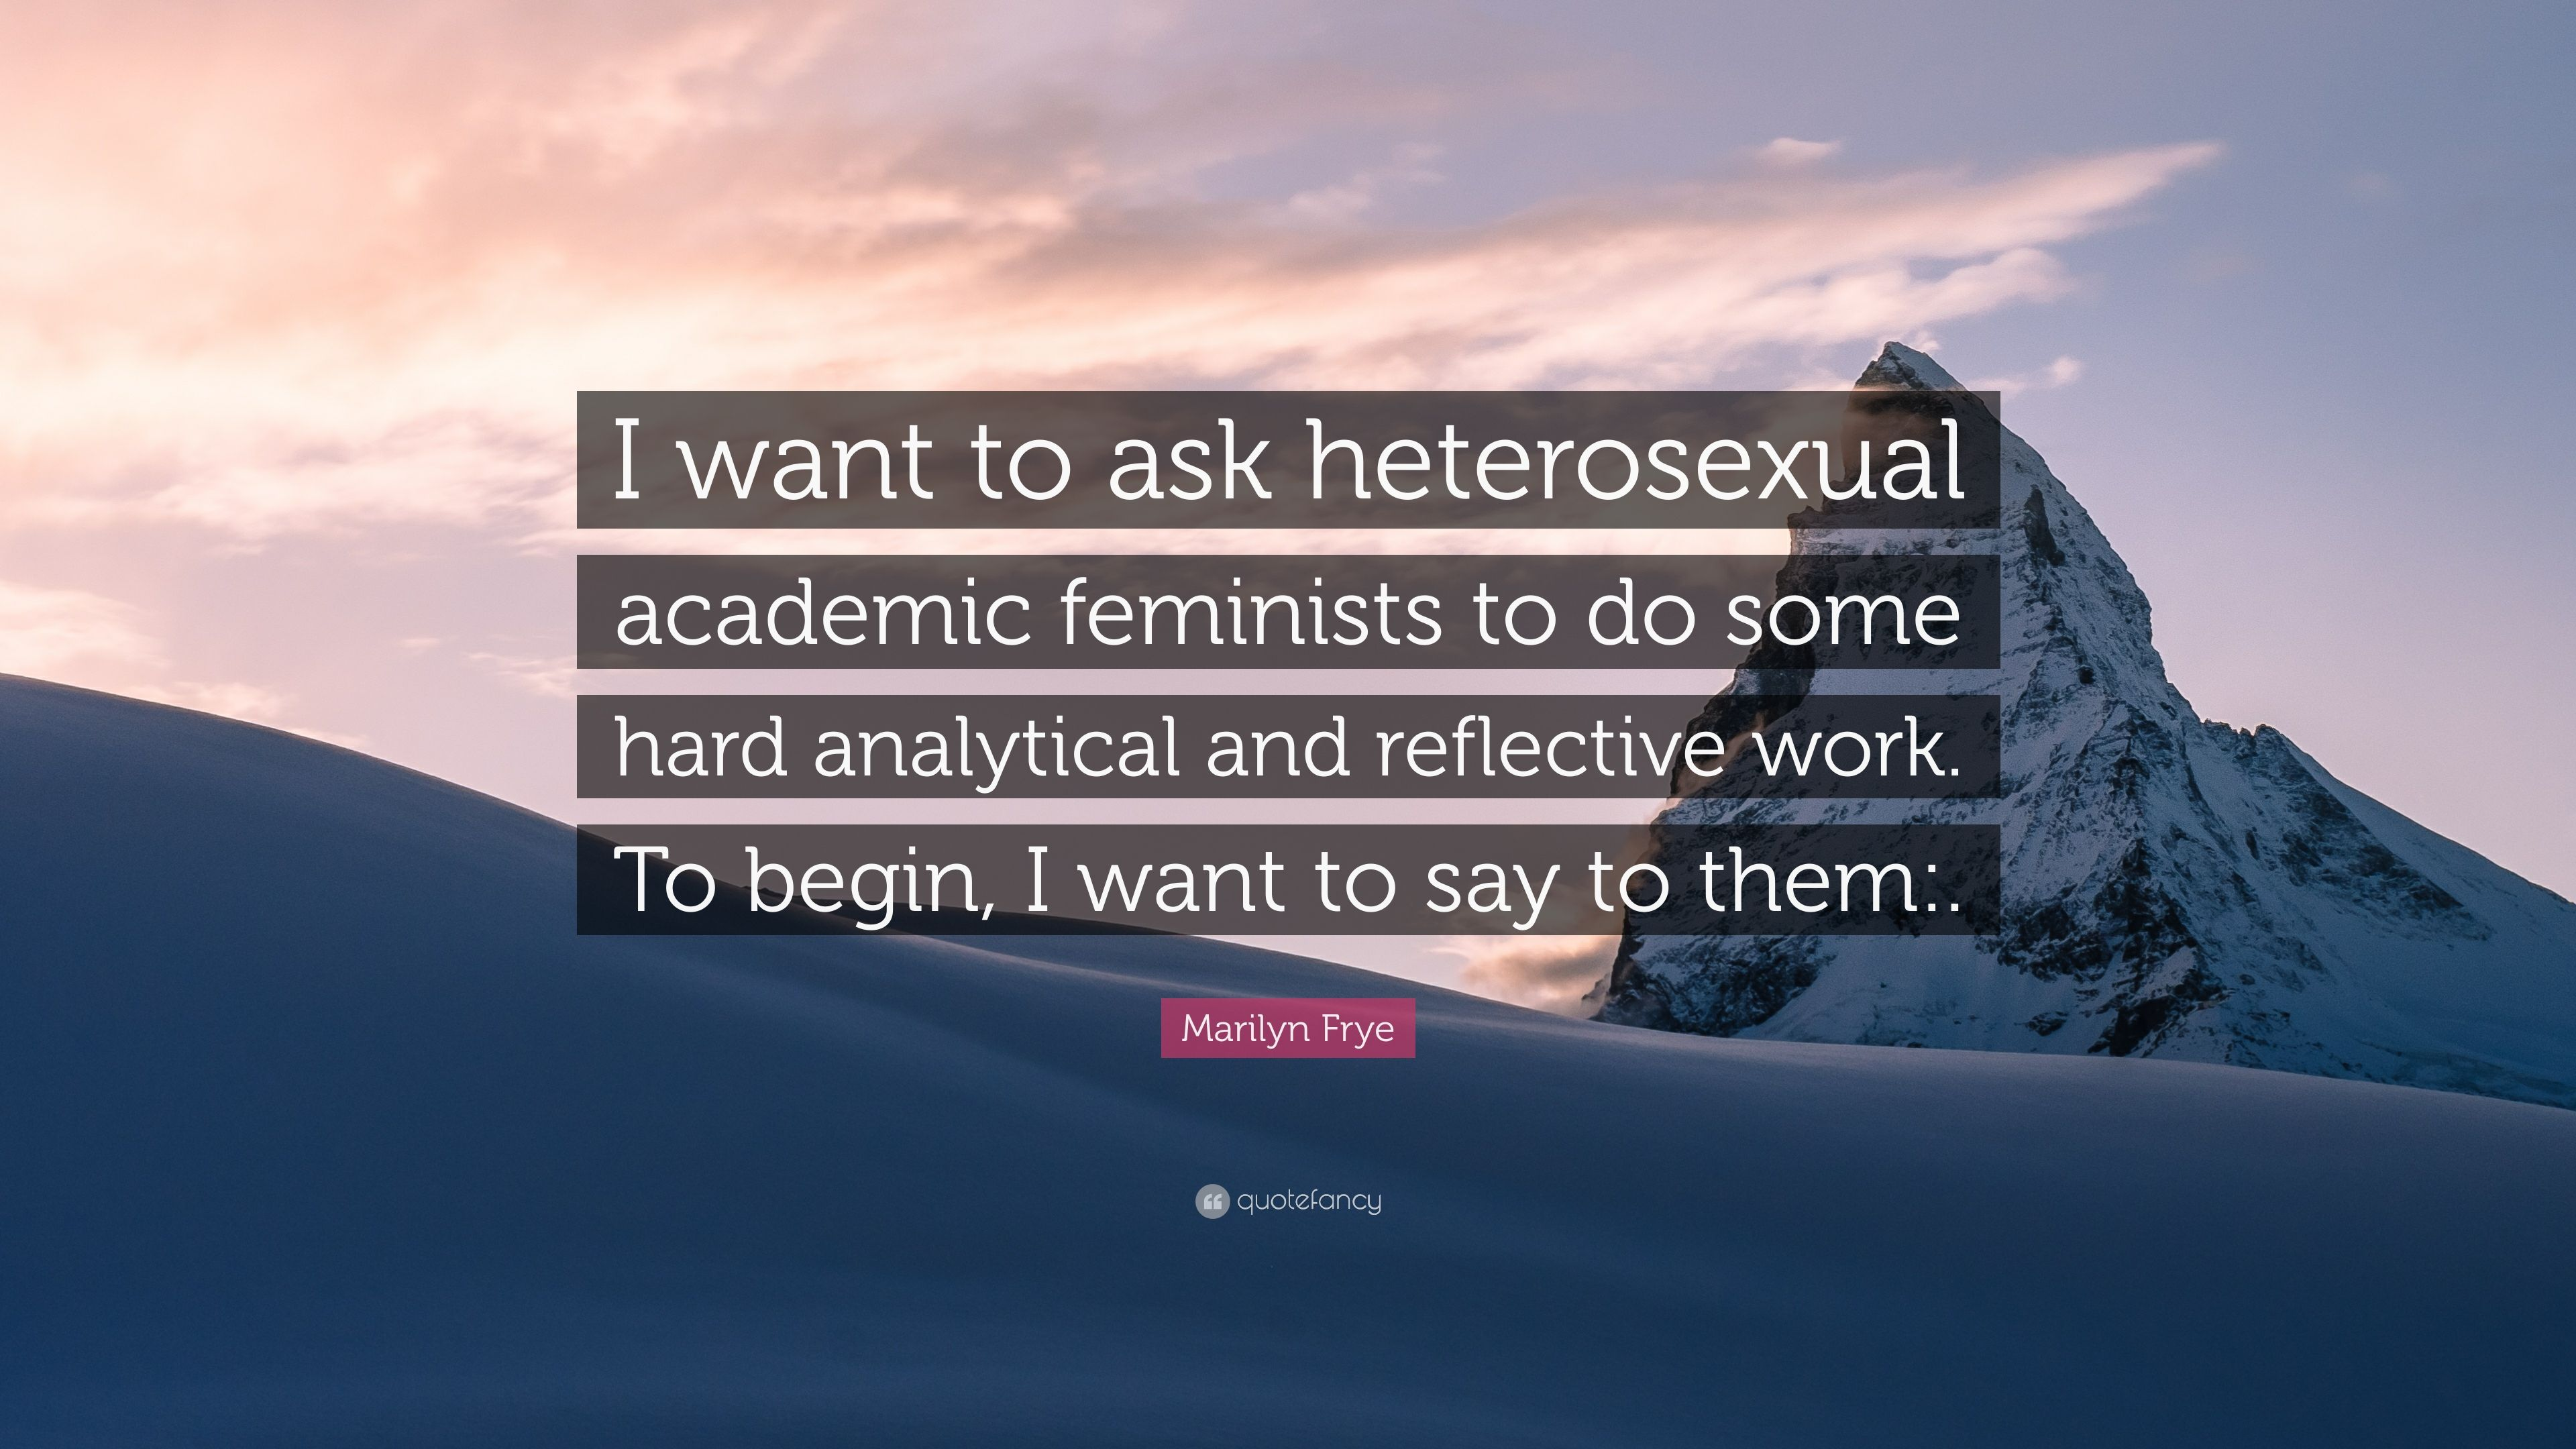 I want to be heterosexual